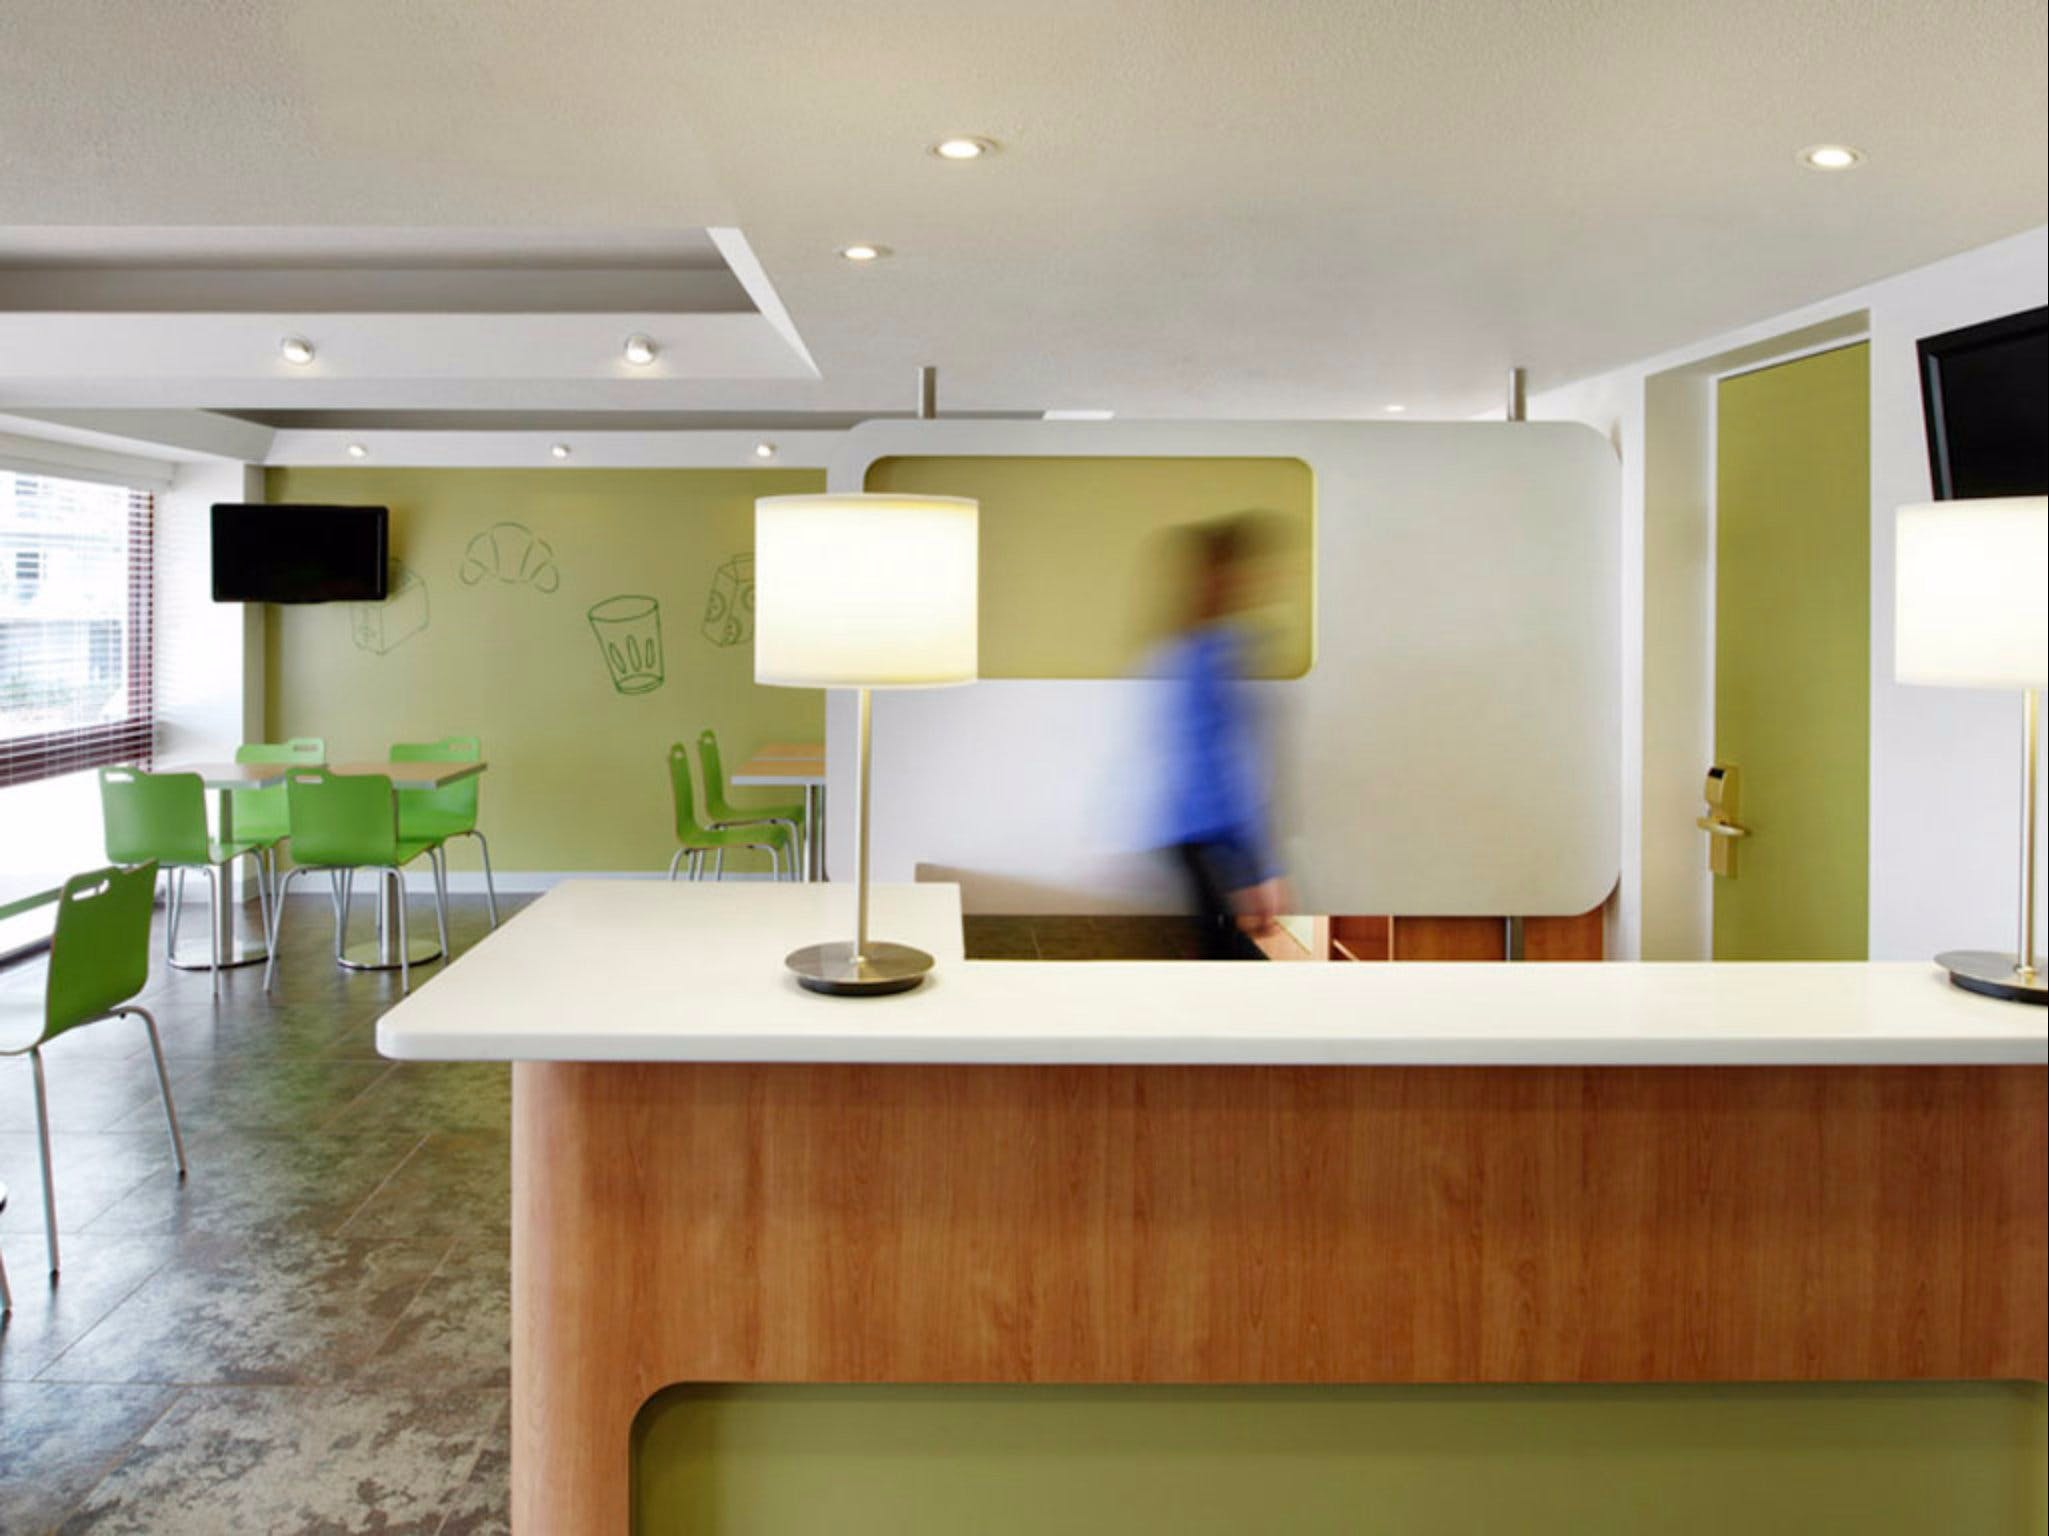 ibis budget Newcastle - eAccommodation